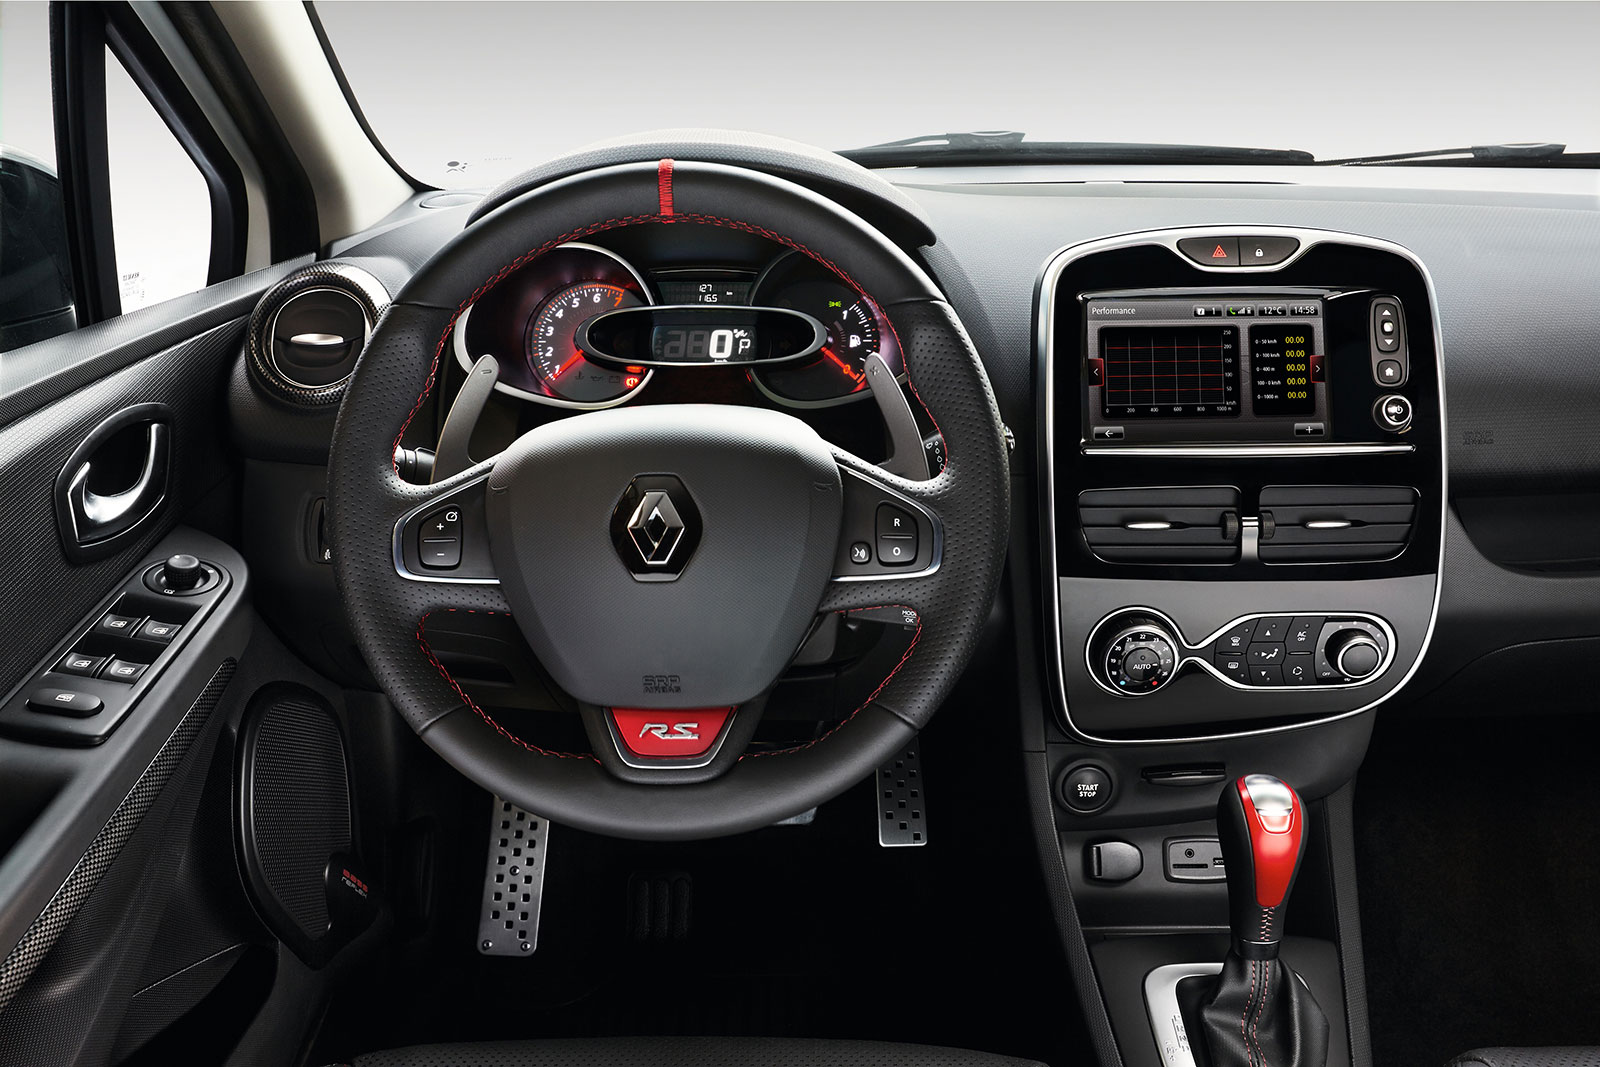 renault clio rs 220 trophy 220 hp faster gearbox paul tan image 315980. Black Bedroom Furniture Sets. Home Design Ideas